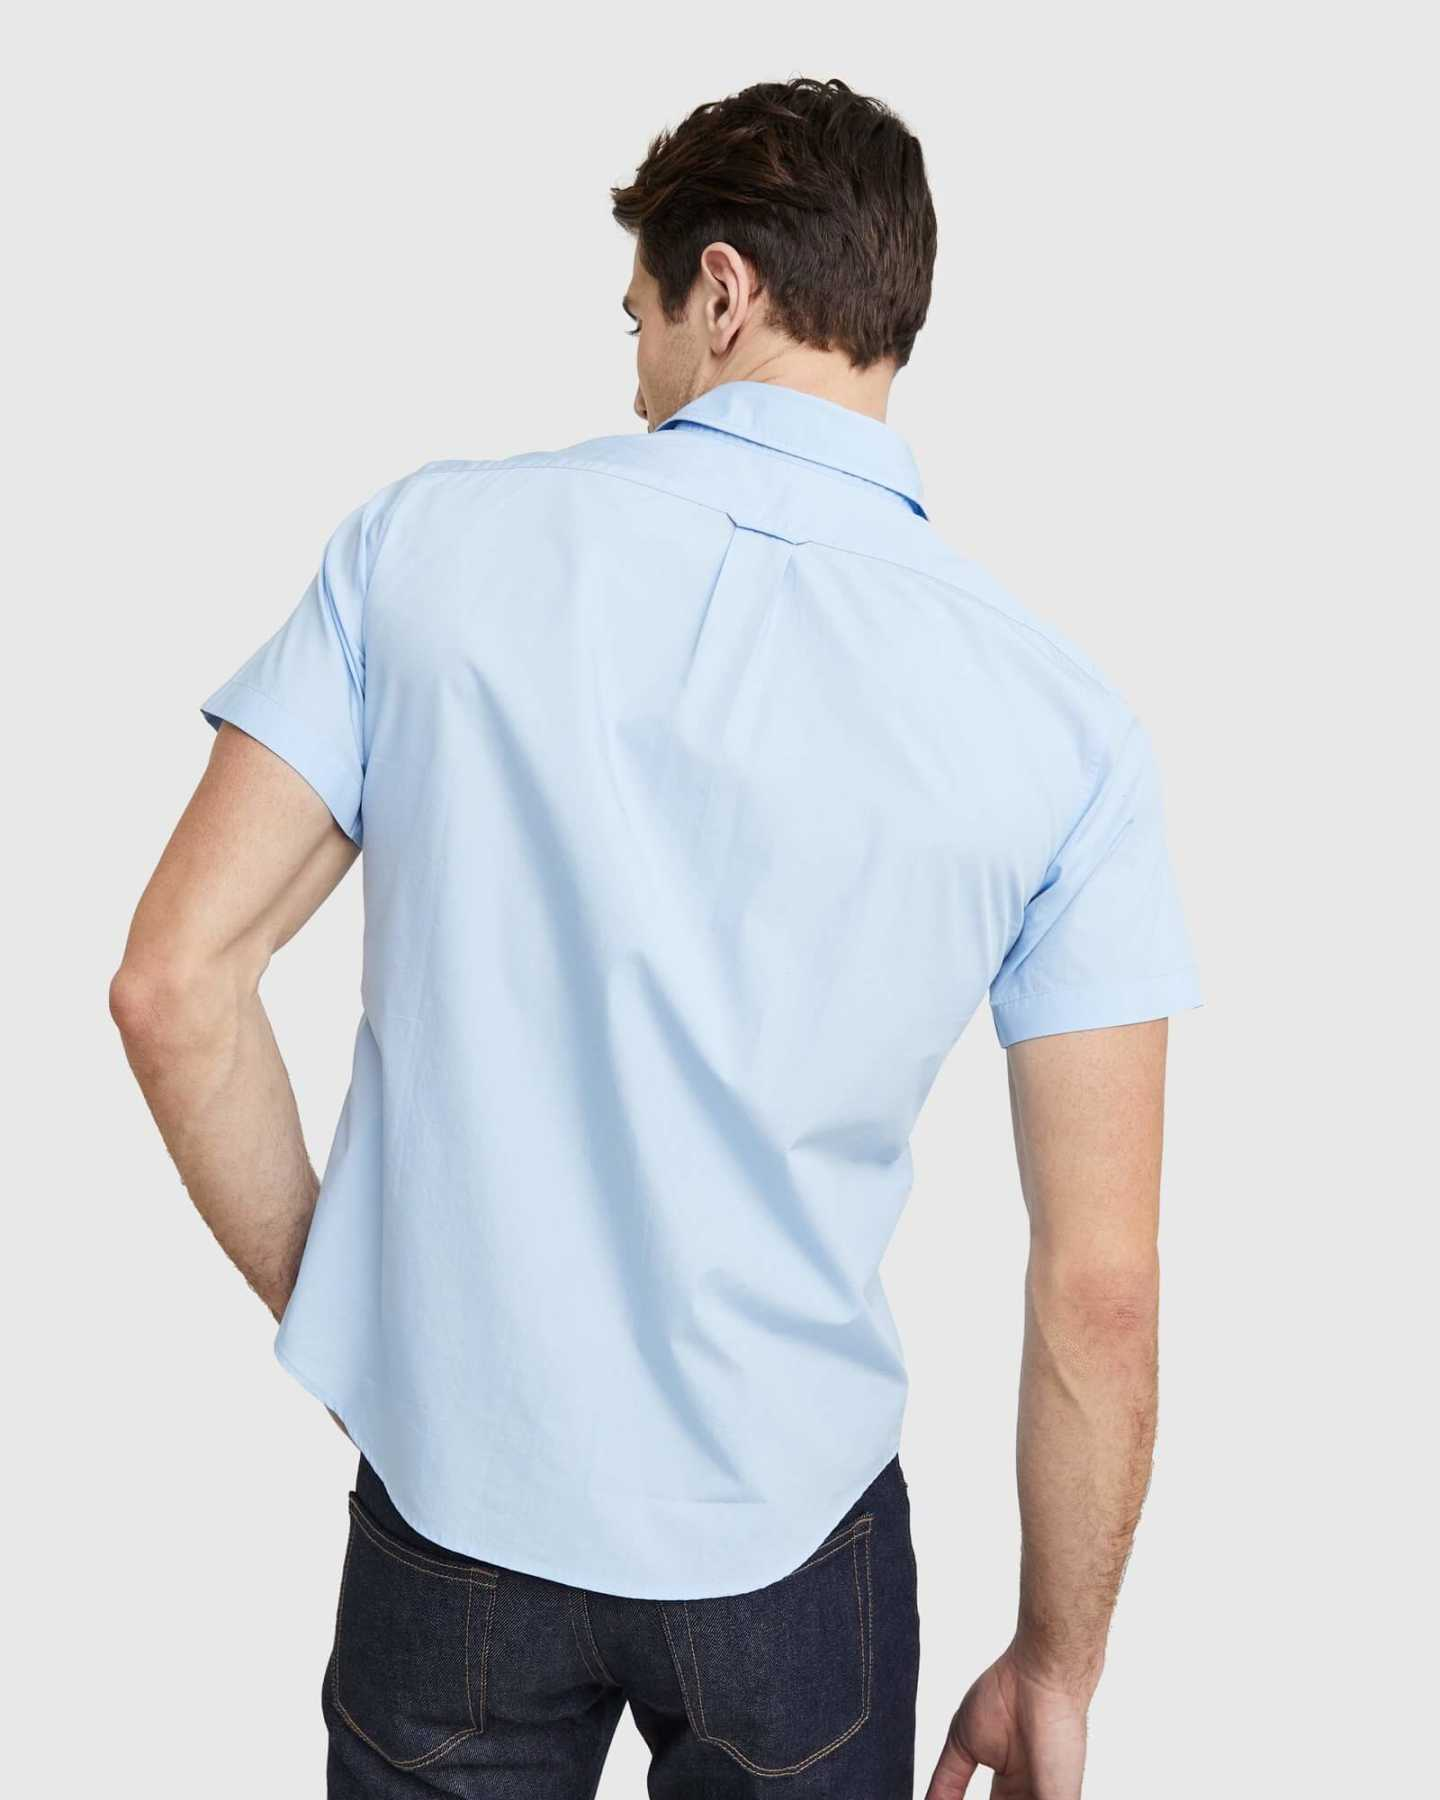 Organic Short Sleeve Stretch Poplin Shirt - Light Blue - 9